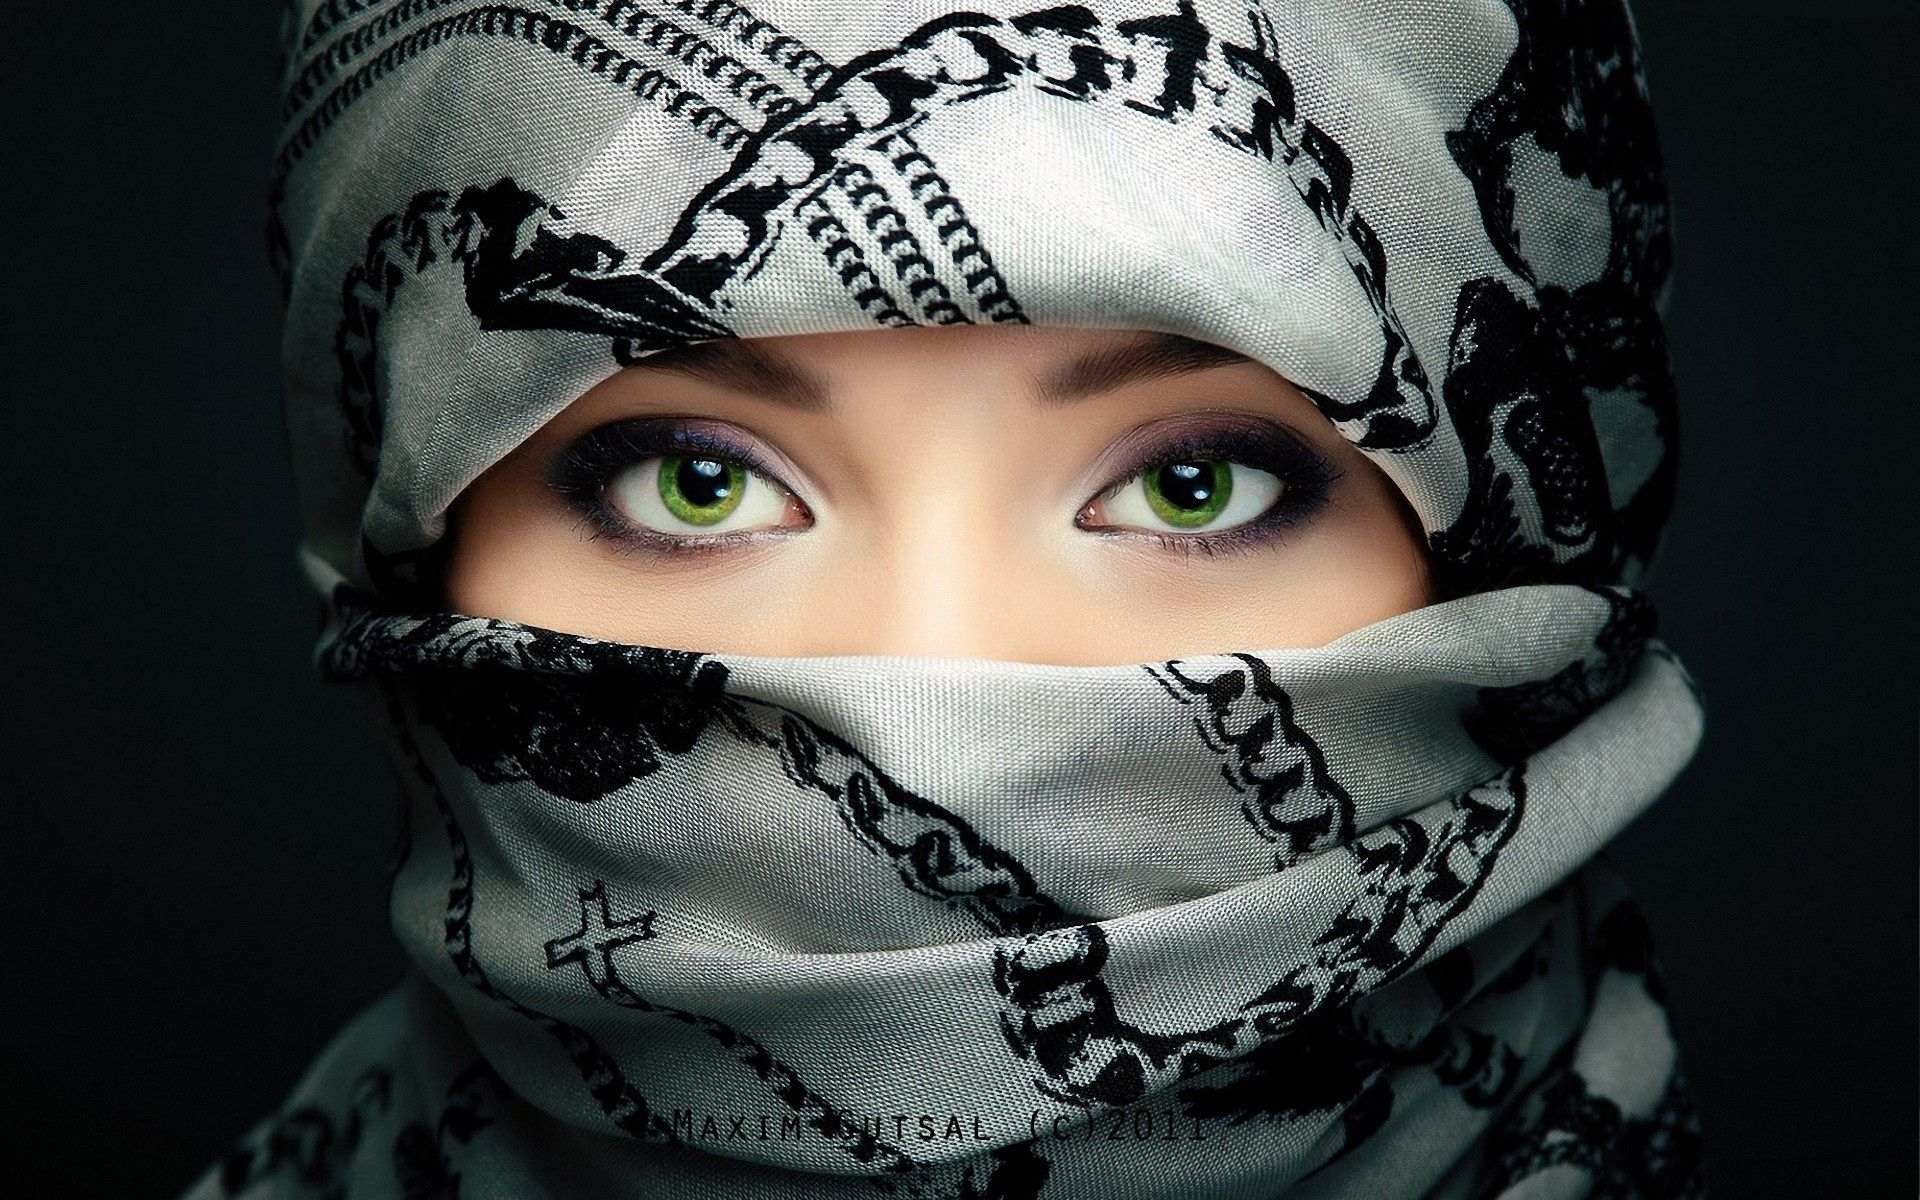 Green Eyes Muslim Girl Wallpaper In High Resolution Free Download